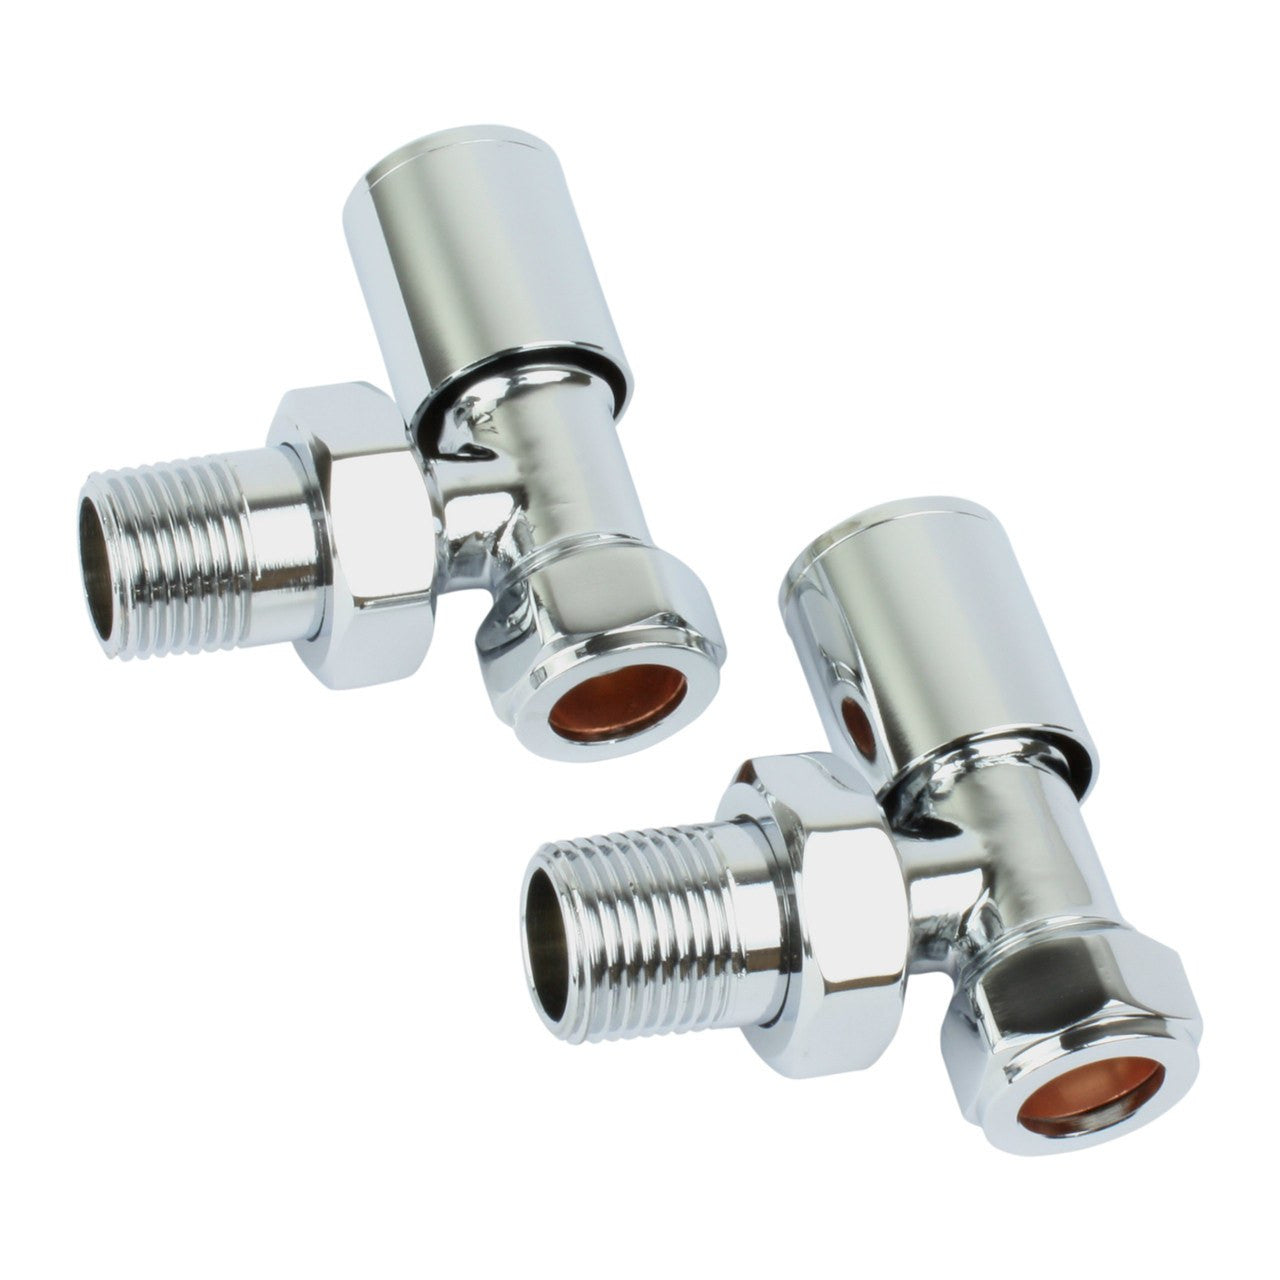 Dual Fuel Kit Chrome Thermostatic Heating Element - REG3 For Heated Towel Rail Radiator - Elegant Radiators